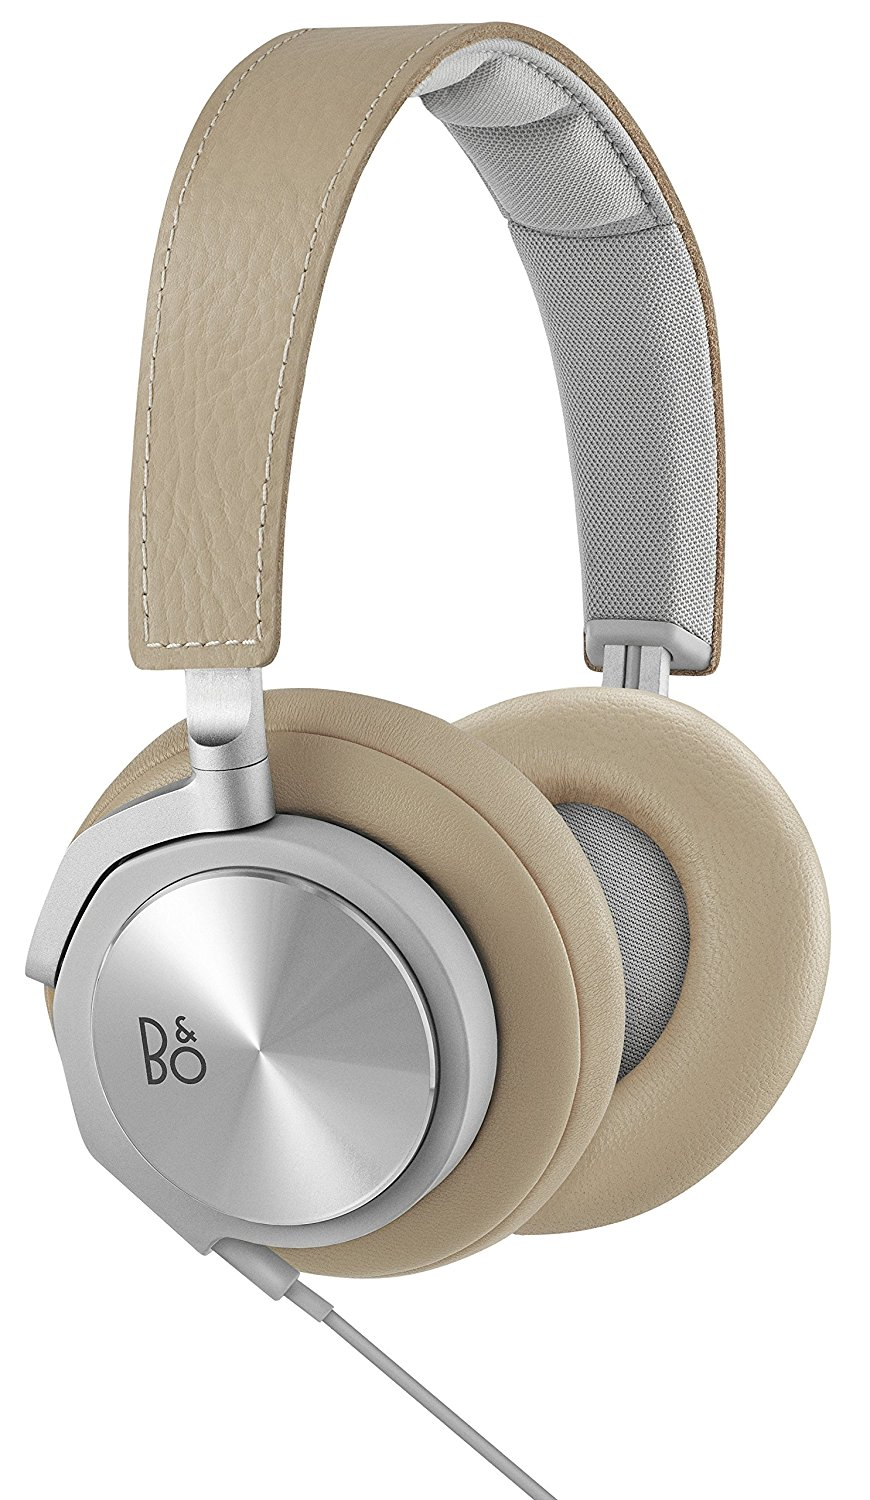 B&O Bang & Olufsen Beoplay amazon